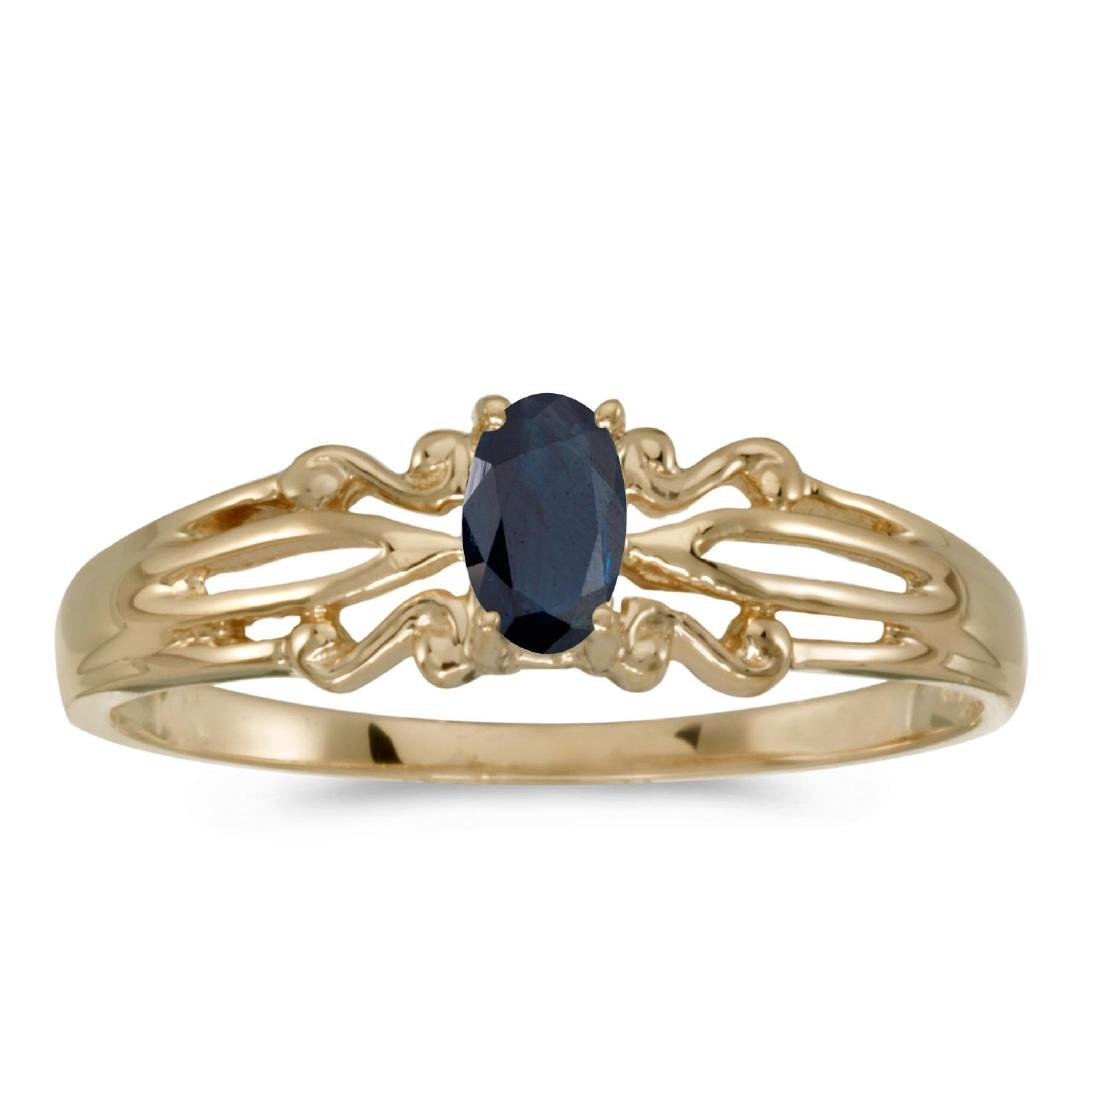 Certified 10k Yellow Gold Oval Sapphire Ring 0.25 CTW